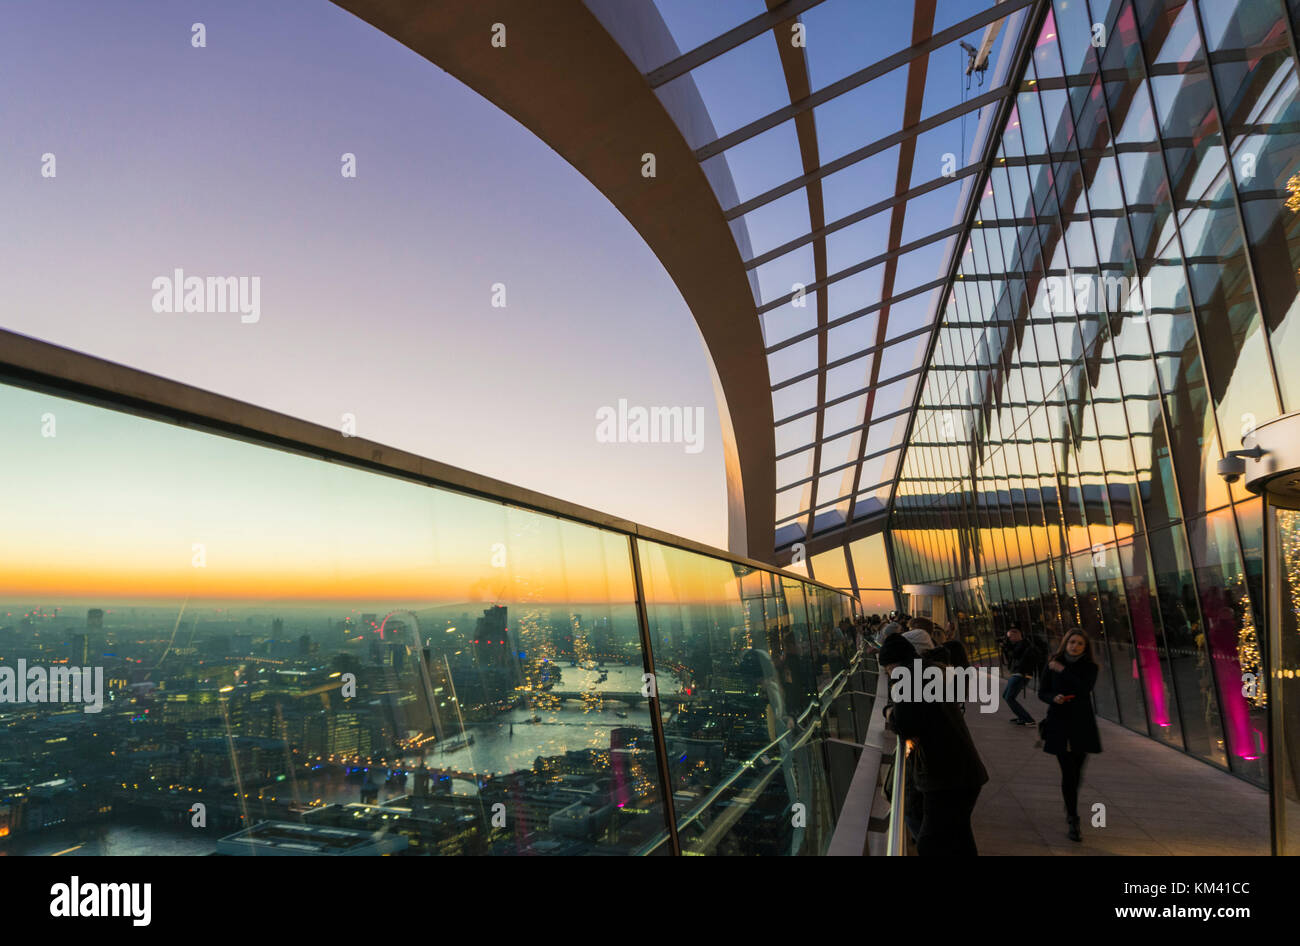 England London England city of London skyline dusk The Walkie talkie building skyscraper or 20 Fenchurch Street - Stock Image